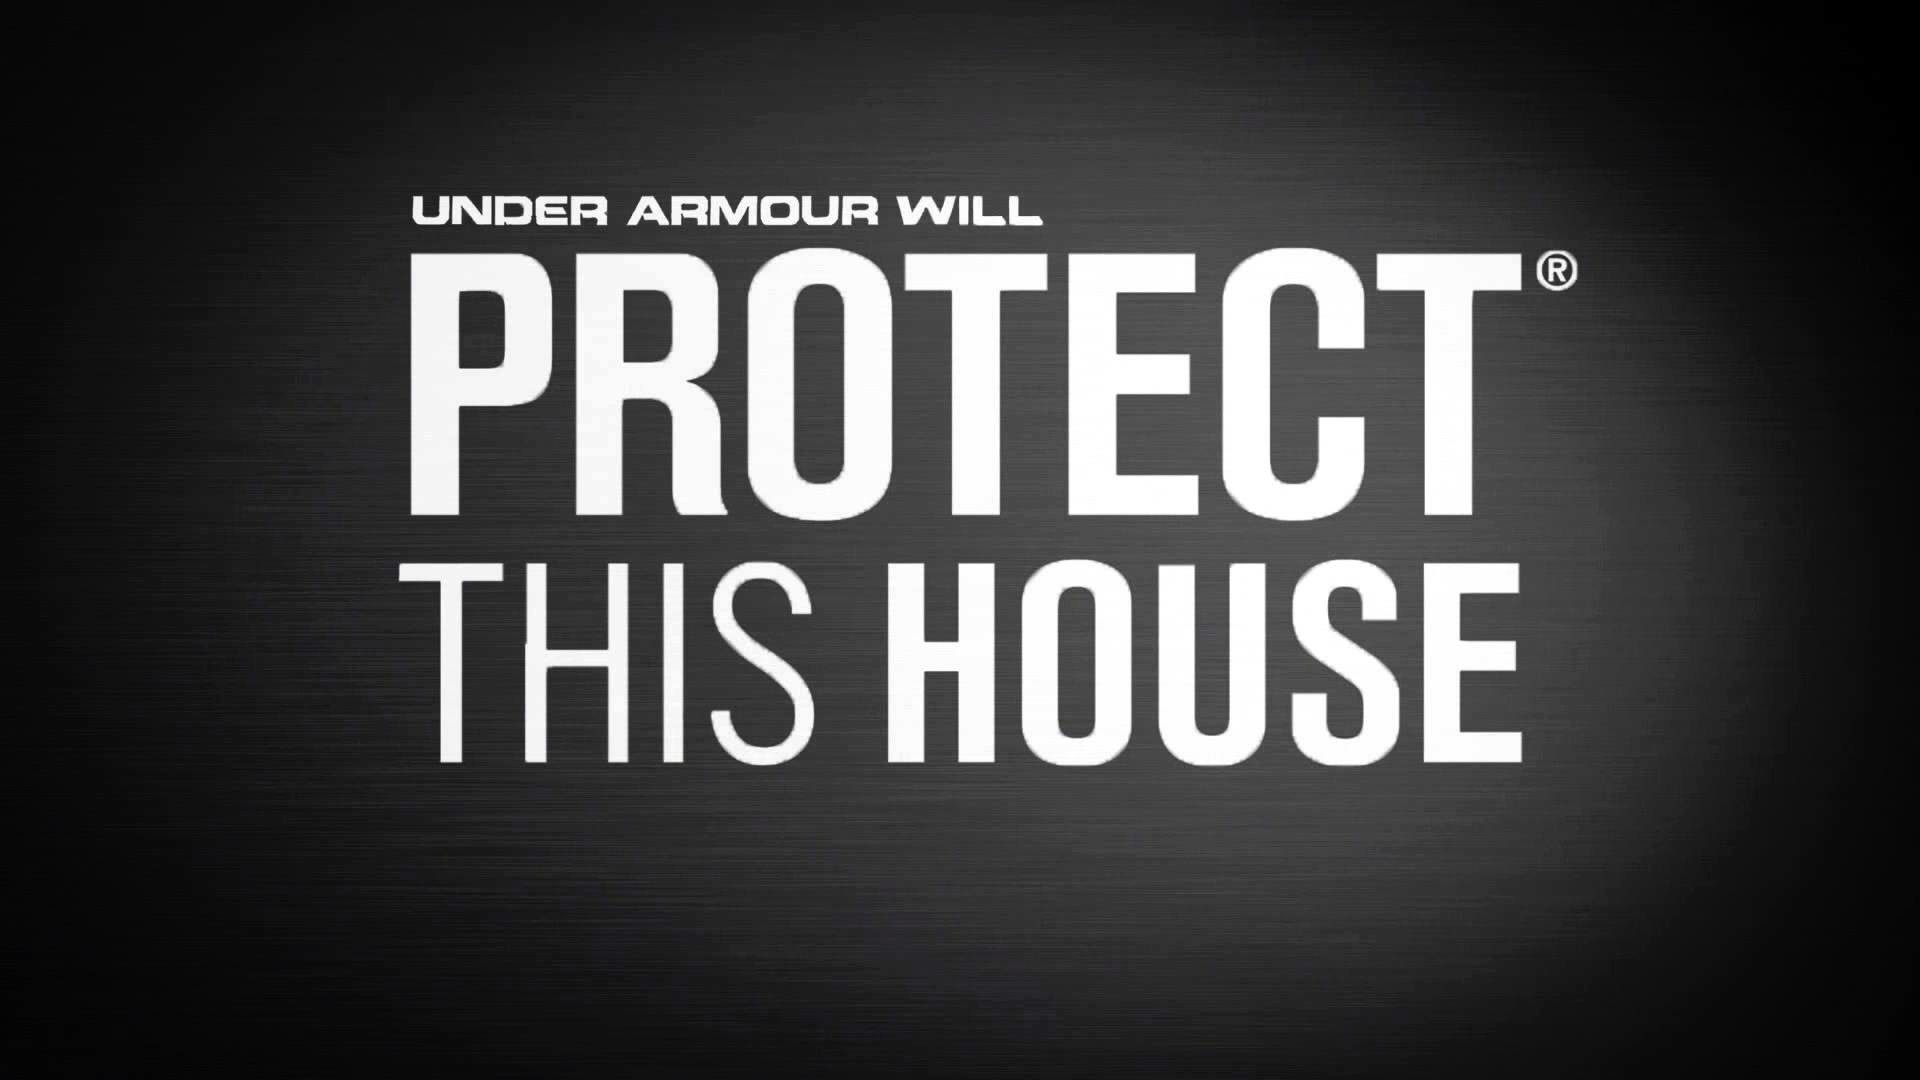 under armour saying